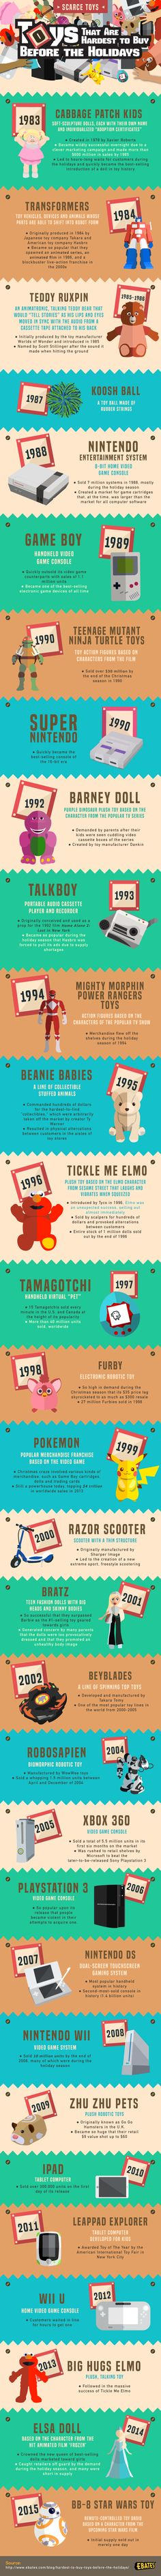 Toys That are Hardest to Buy Before the Holidays #infographic #Toys #Holiday